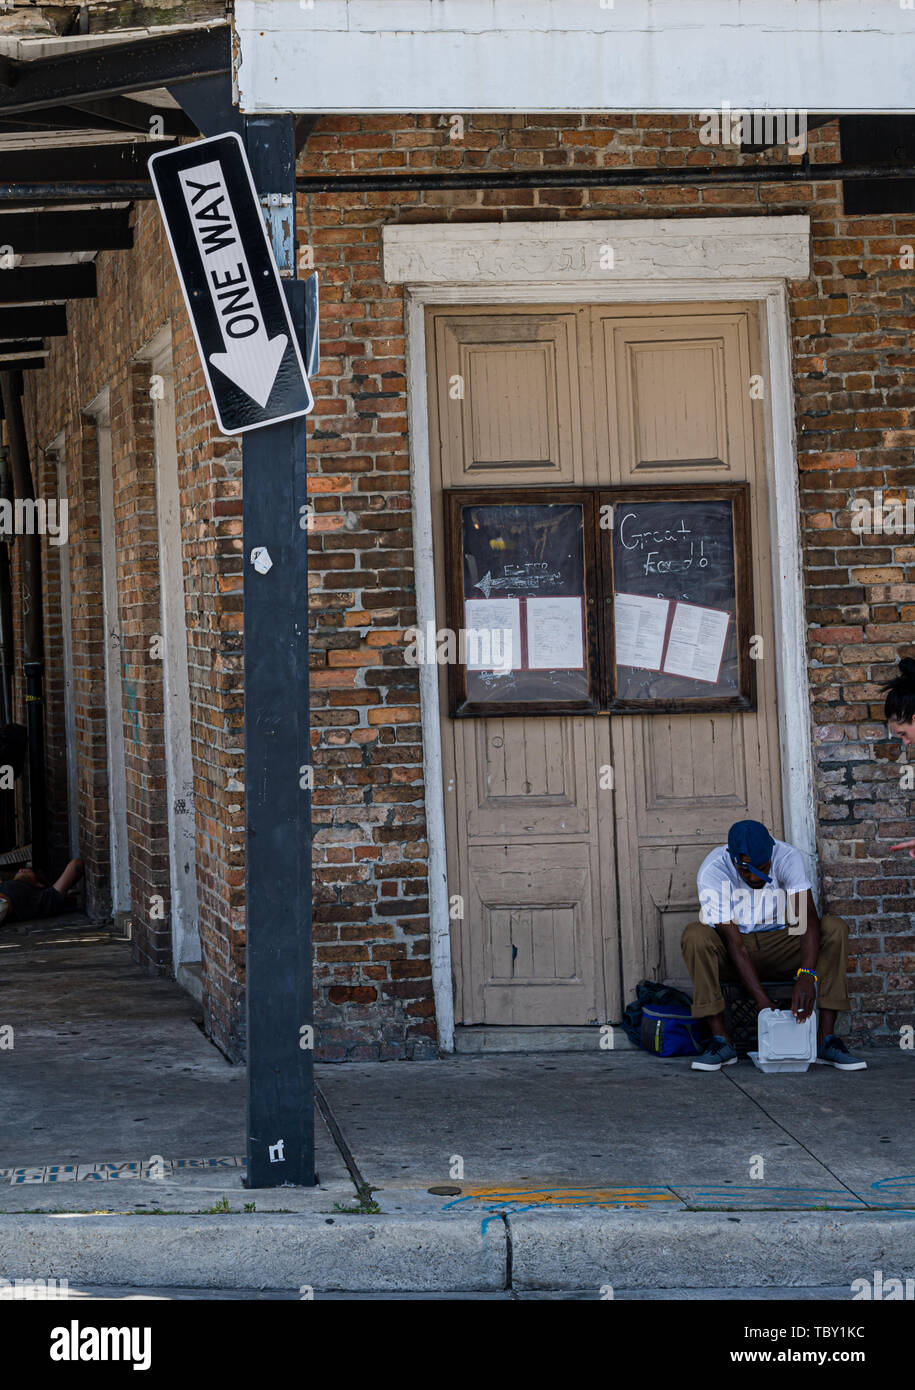 New Orleans, LA, USA -- May 23, 2019.  A Man sits in the doorway of an old Saloon;  a broken One Way sign points down. Stock Photo